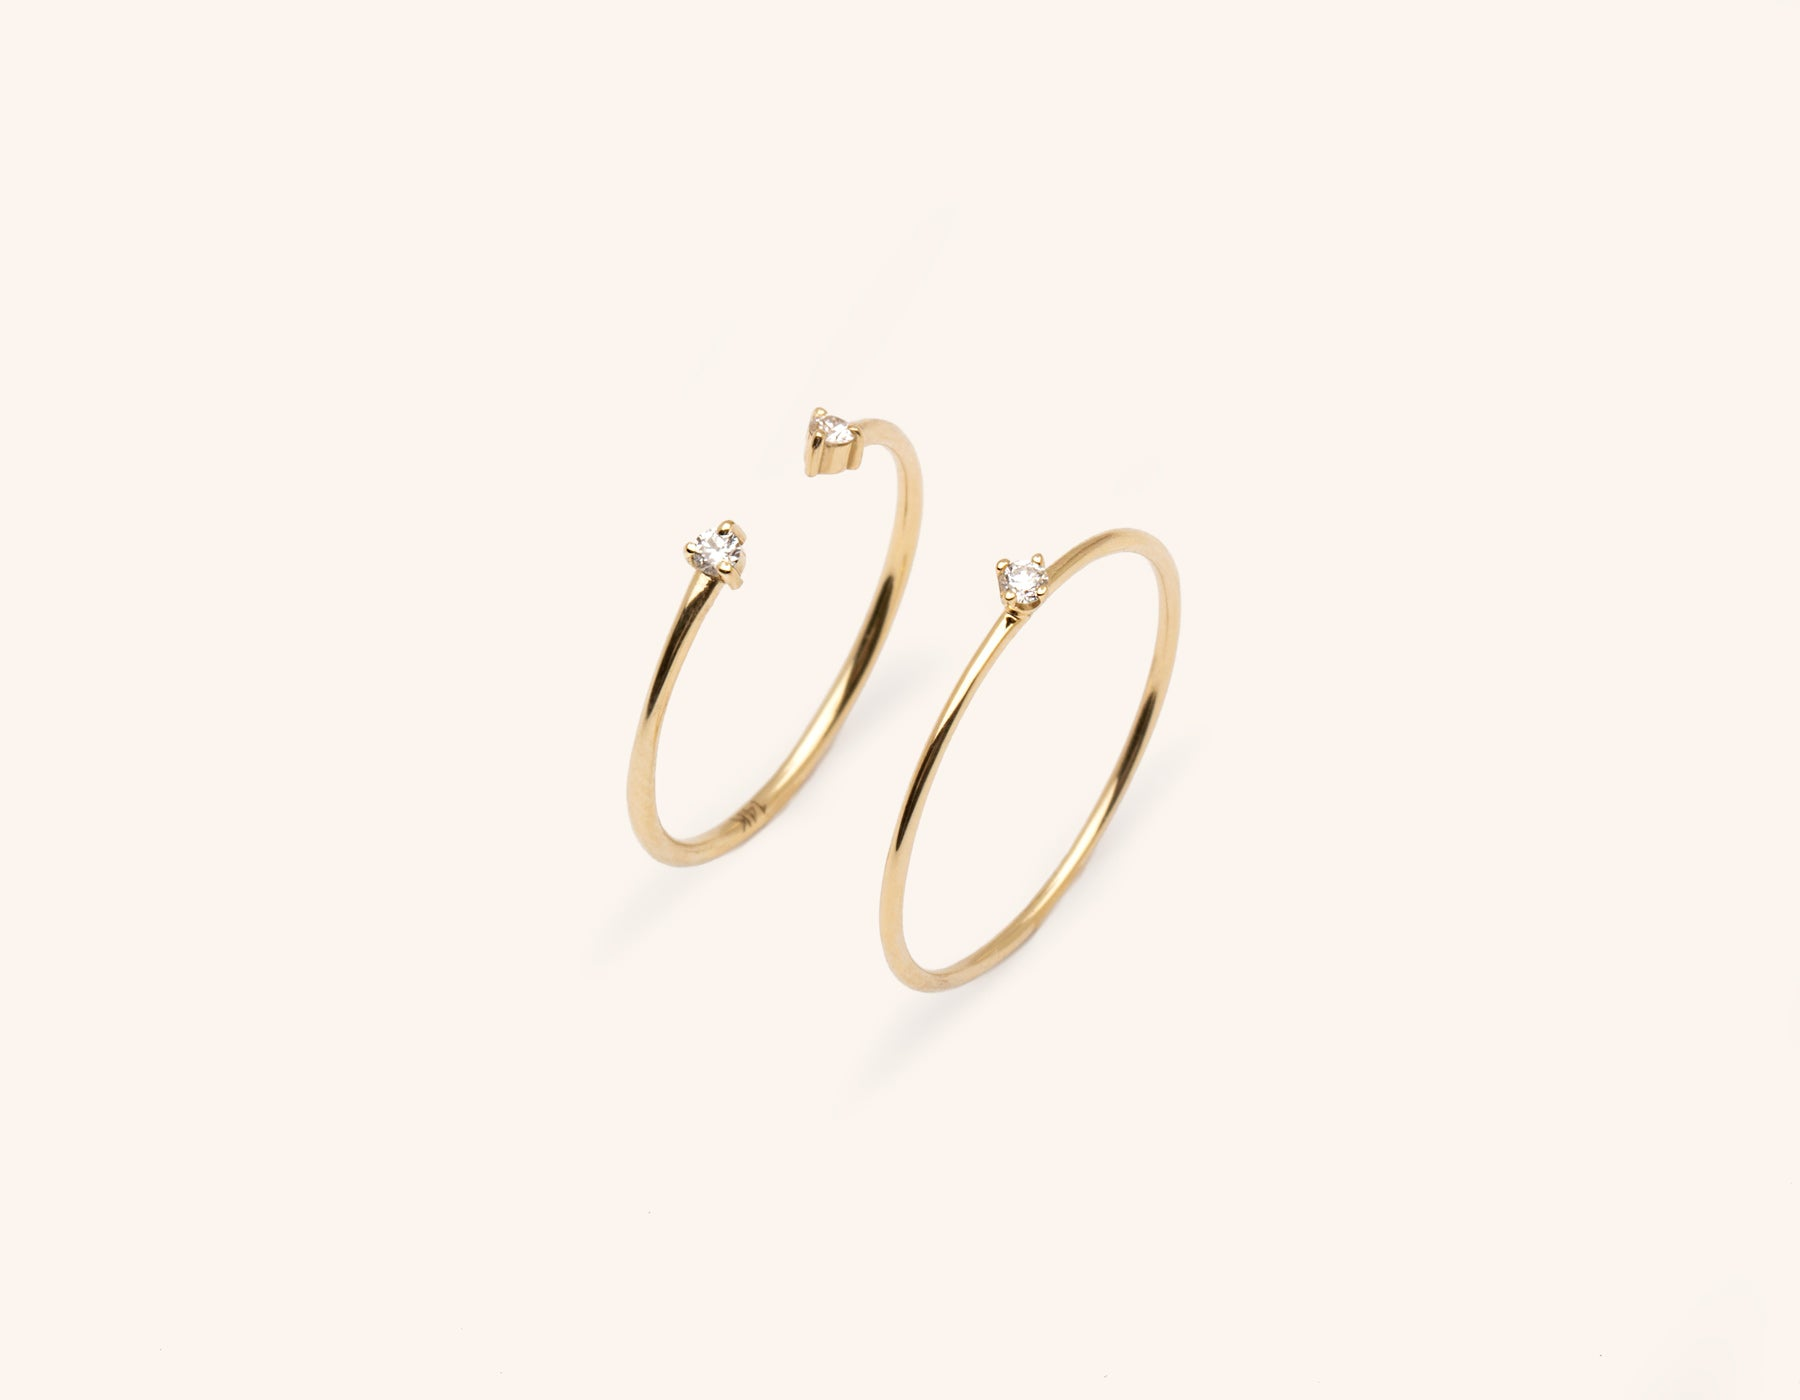 Vrai and Oro simple elegant solid gold Constellation Ring Bundle Stack small round diamond stacker with diamond dot cuff ring, 14K Yellow Gold